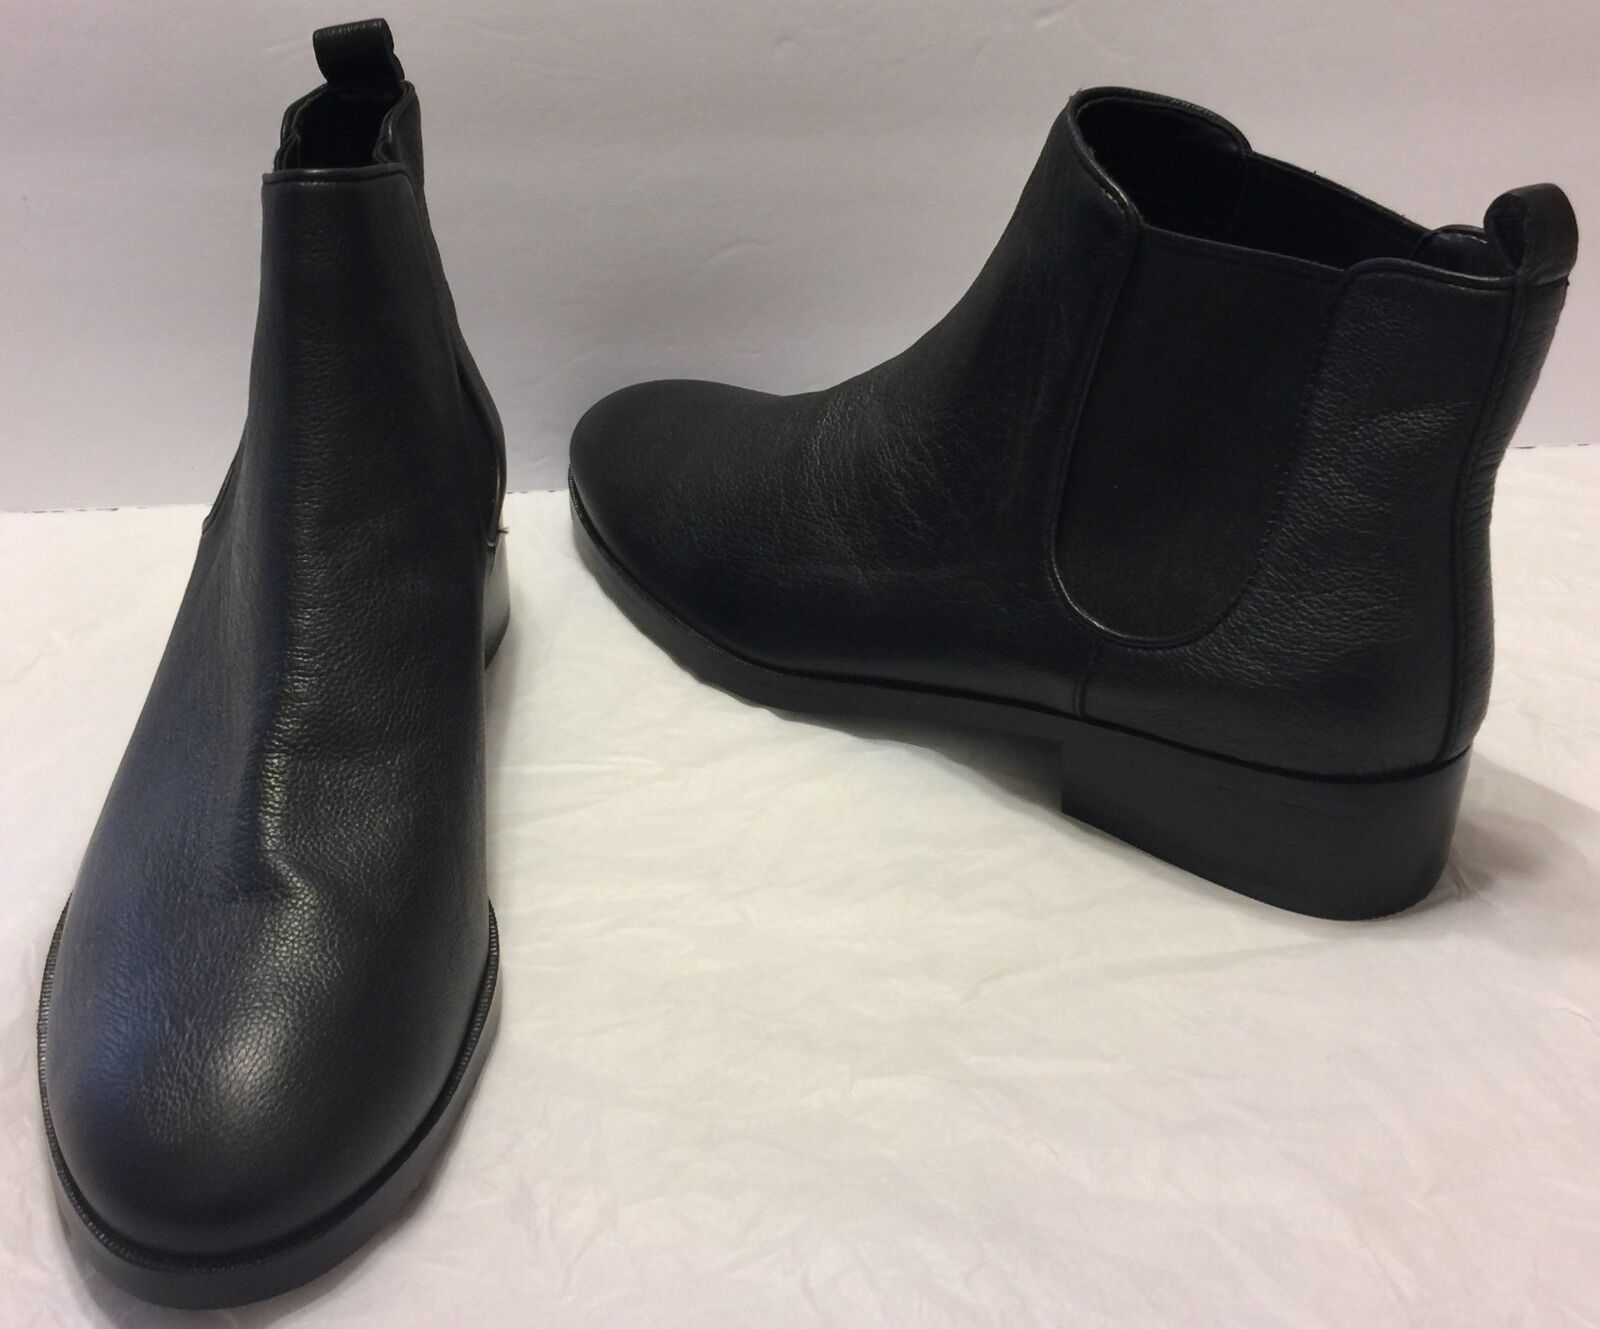 Cole Haan Black Leather Landsman Bootie Chelsea Boots Size 9B 9B 9B Mini Stacked Heel 96c642